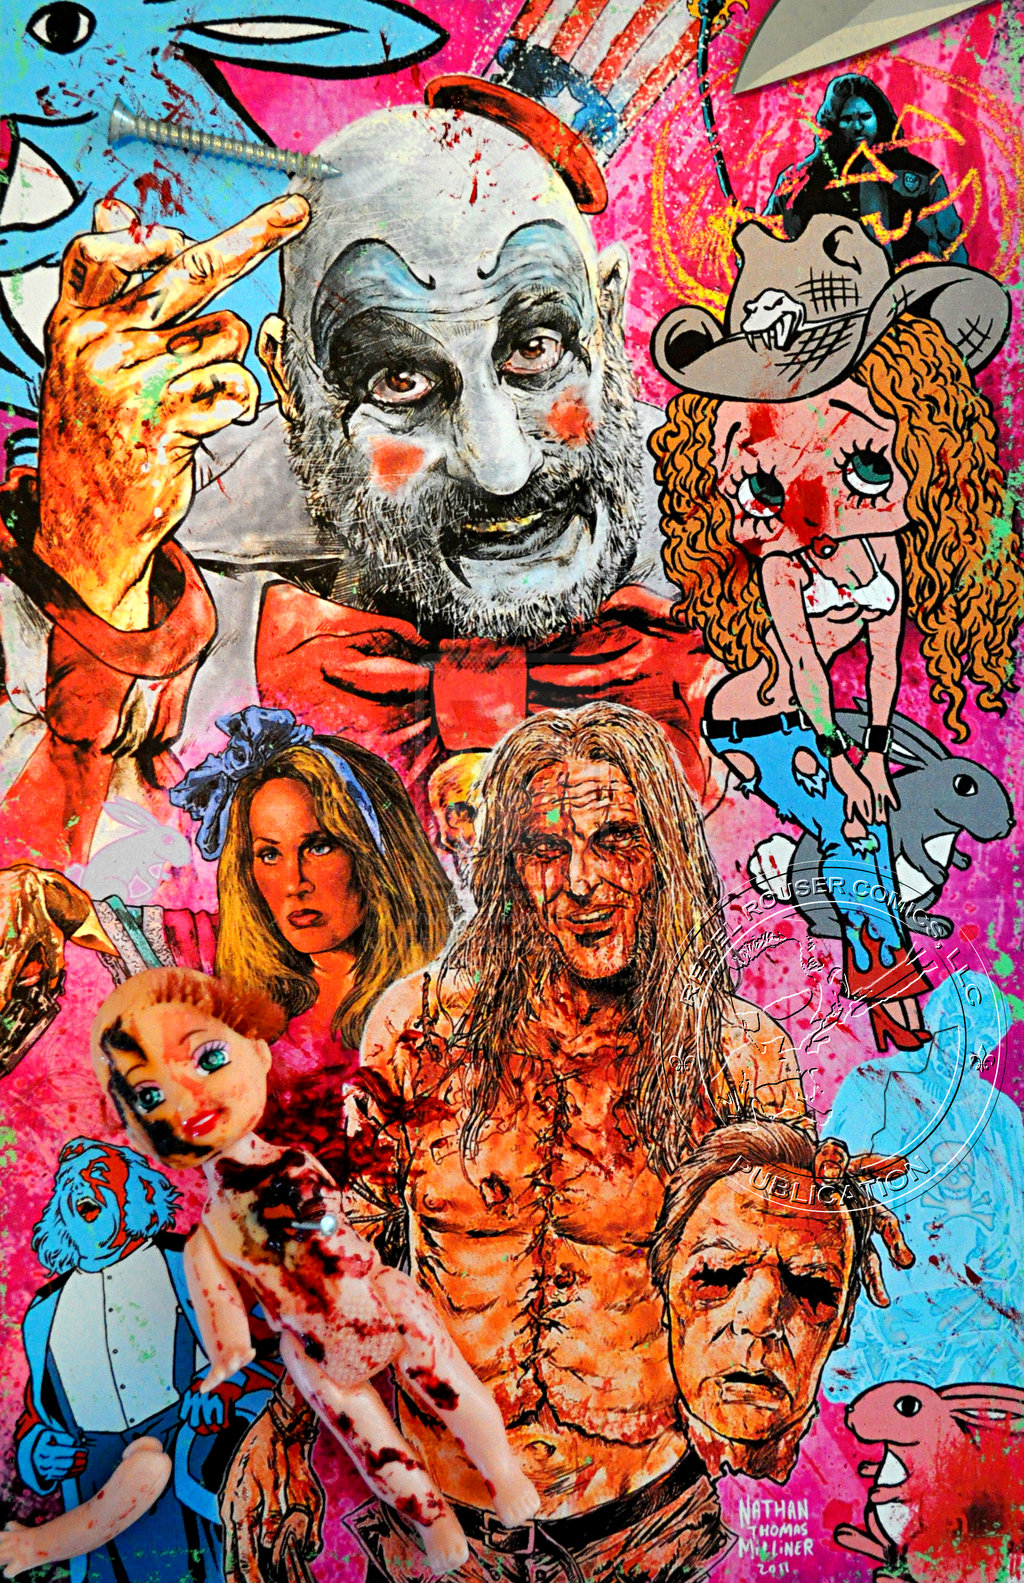 Cell Phone Wallpaper Quotes Download House Of 1000 Corpses Wallpaper Gallery